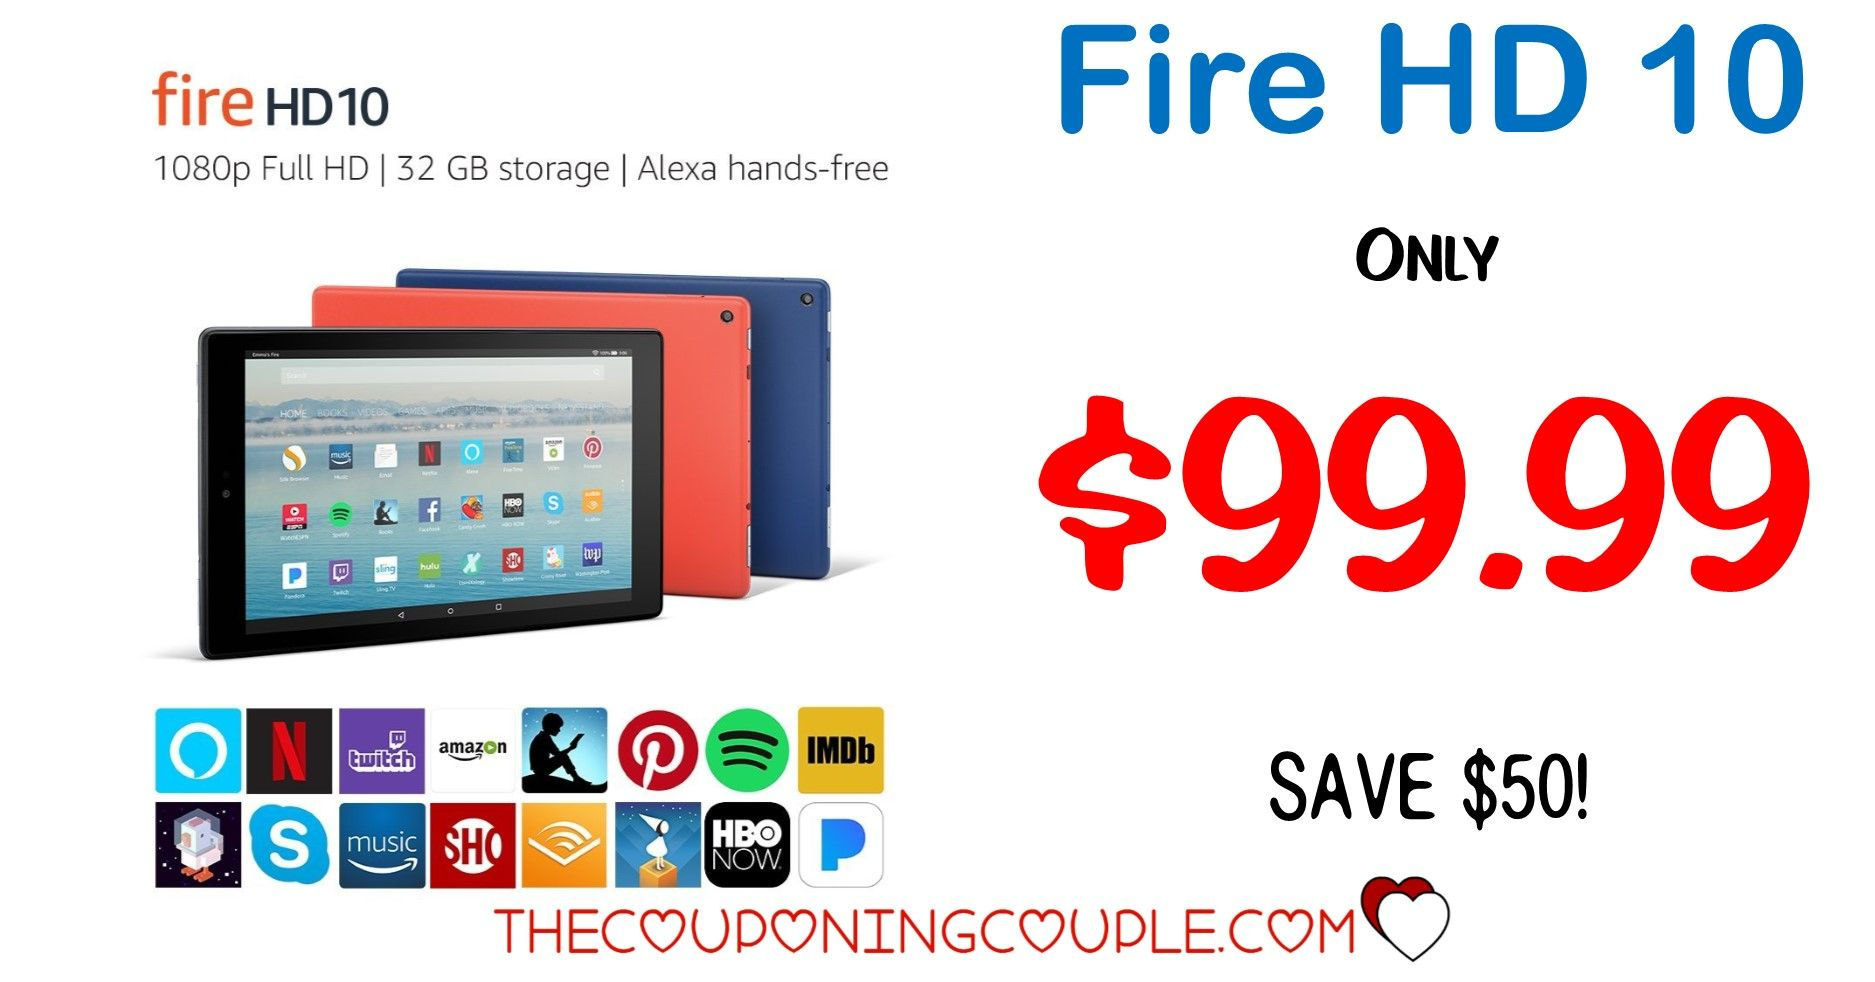 Hot price fire hd 10 tablet only 9999 save 50